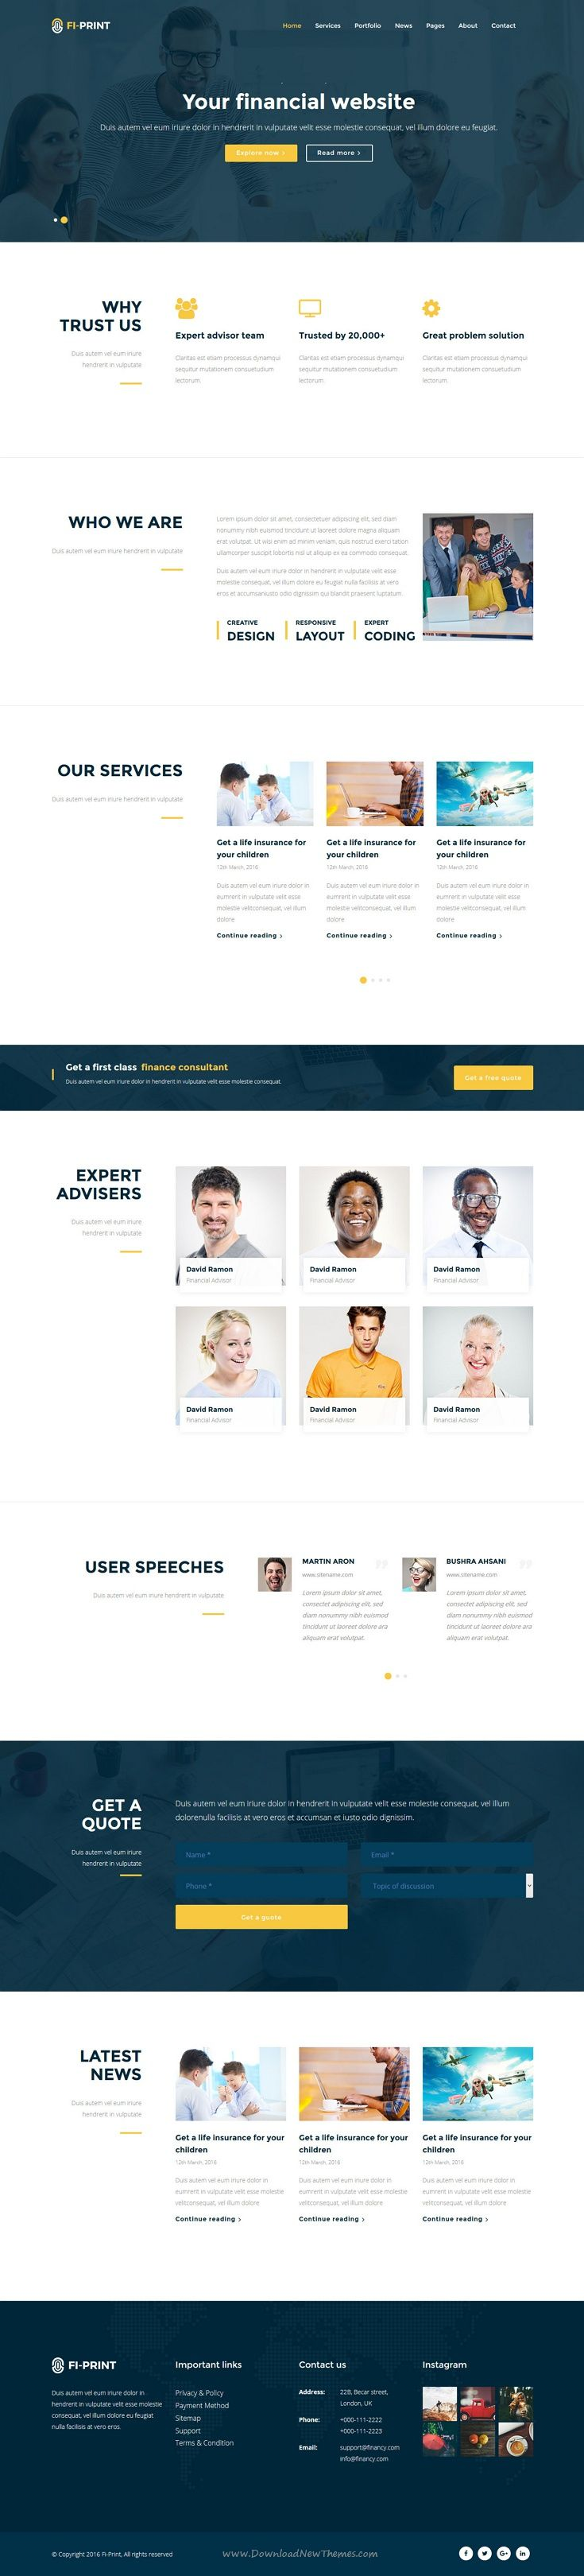 Fi-Print is perfect bootstrap template for corporate website like Financial…